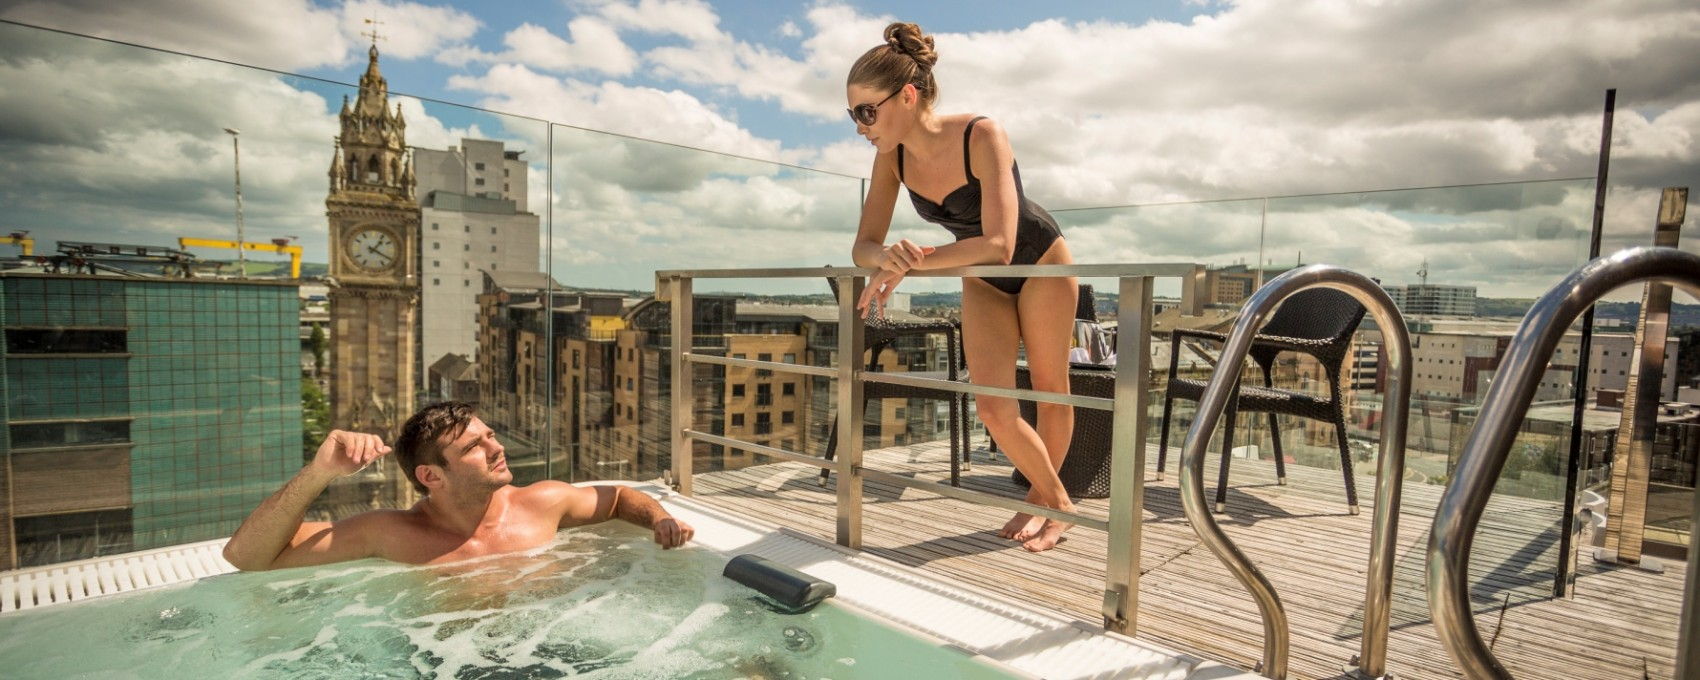 The Merchant is one of the best spa hotels in Ireland.